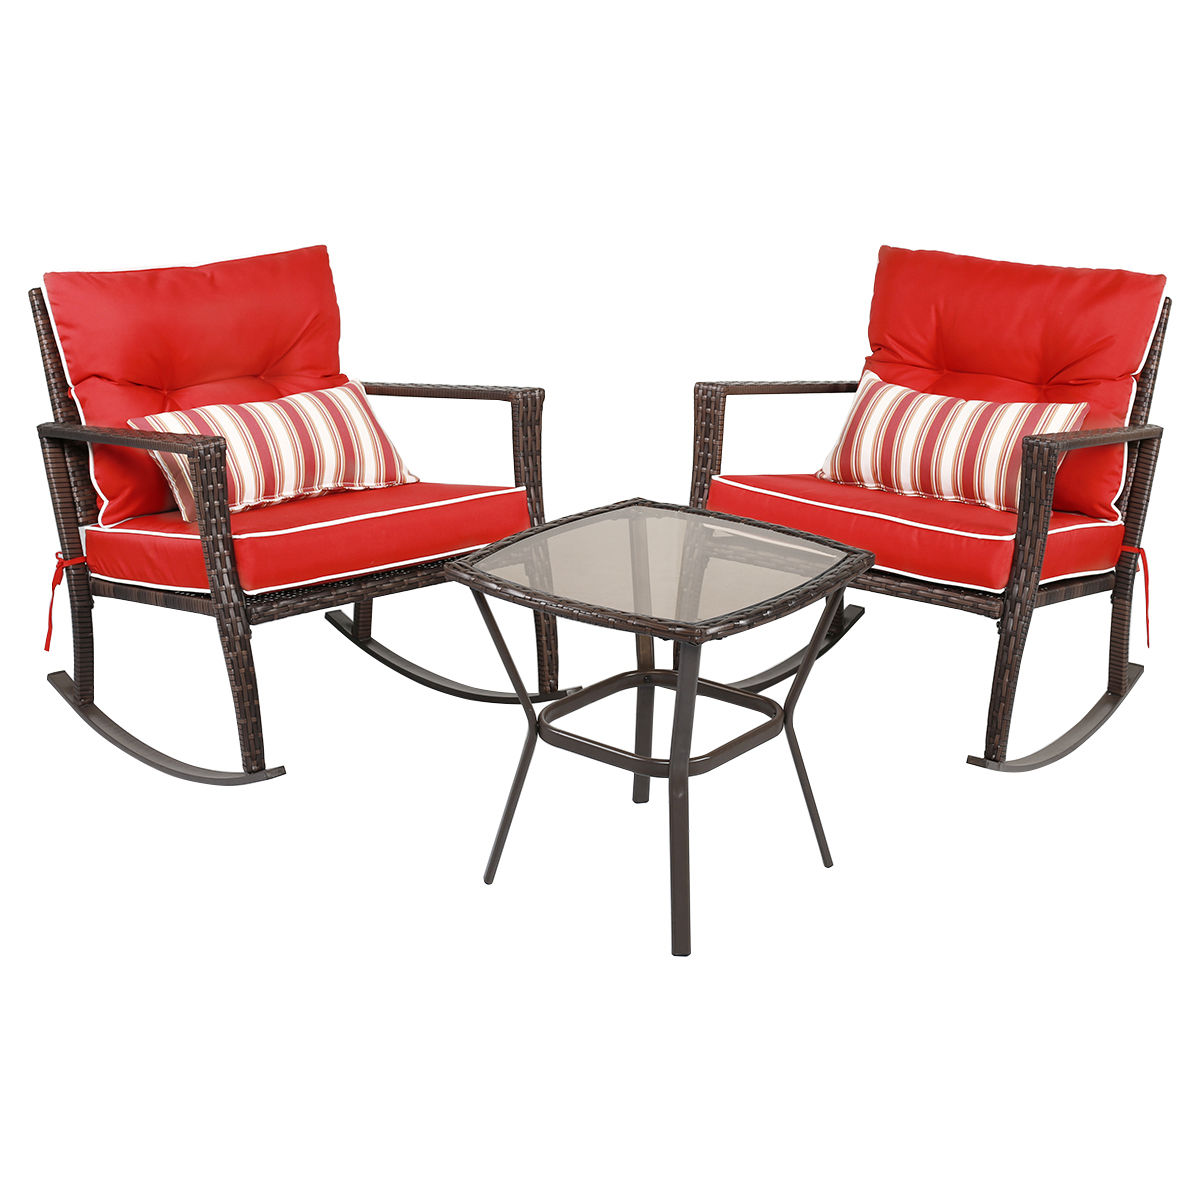 costway 3 pcs patio rattan wicker furniture set rocking chair coffee table wcushions